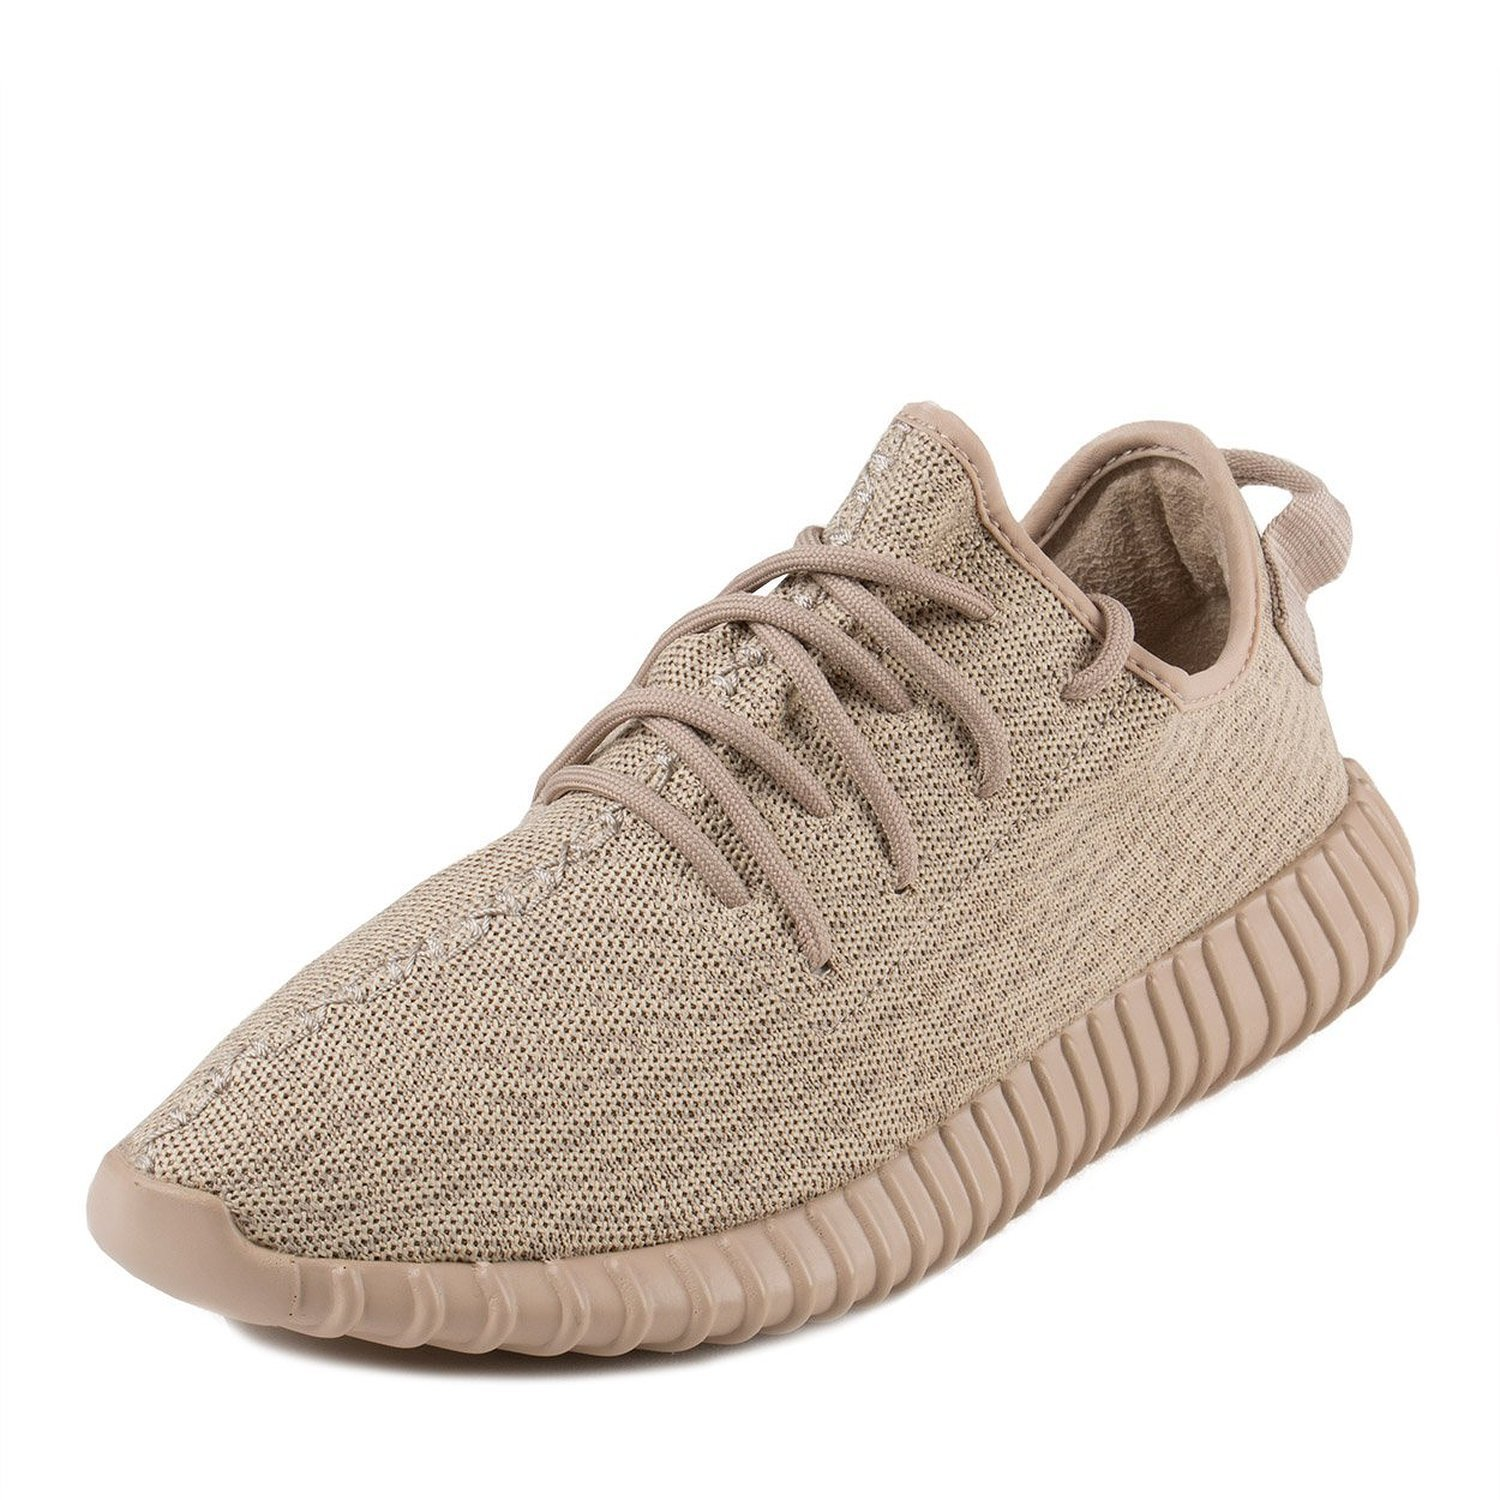 02e1a8ae6 people wearing adidas yeezy boost 350 turtle dove adidas superstar ...